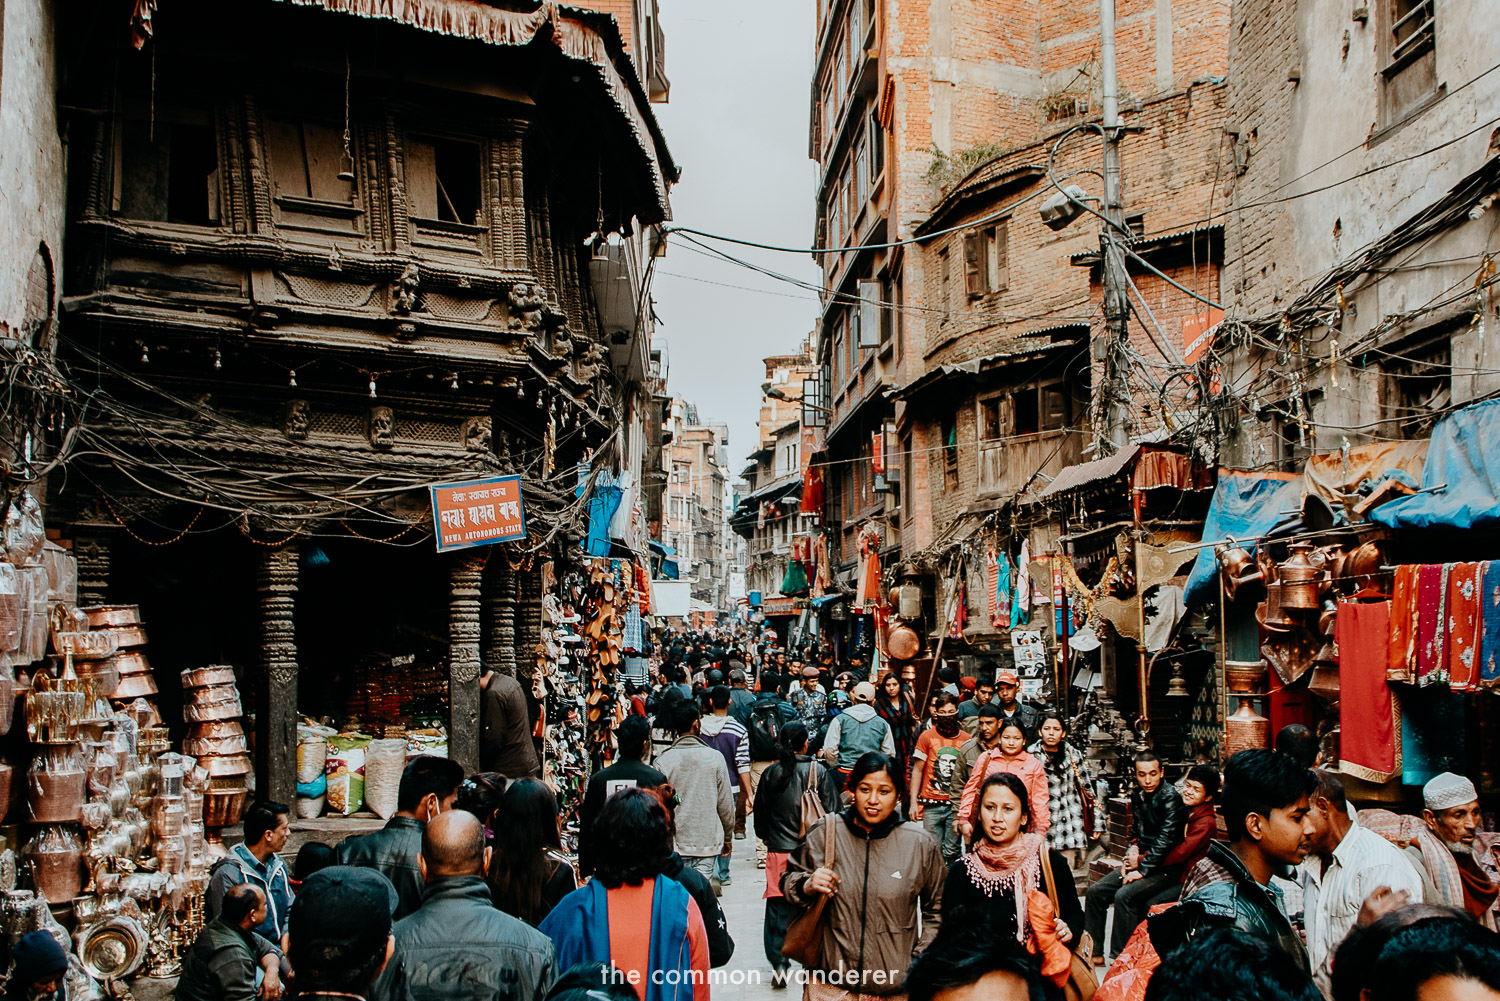 Walking through Asan markets in Kathmandu, Nepal